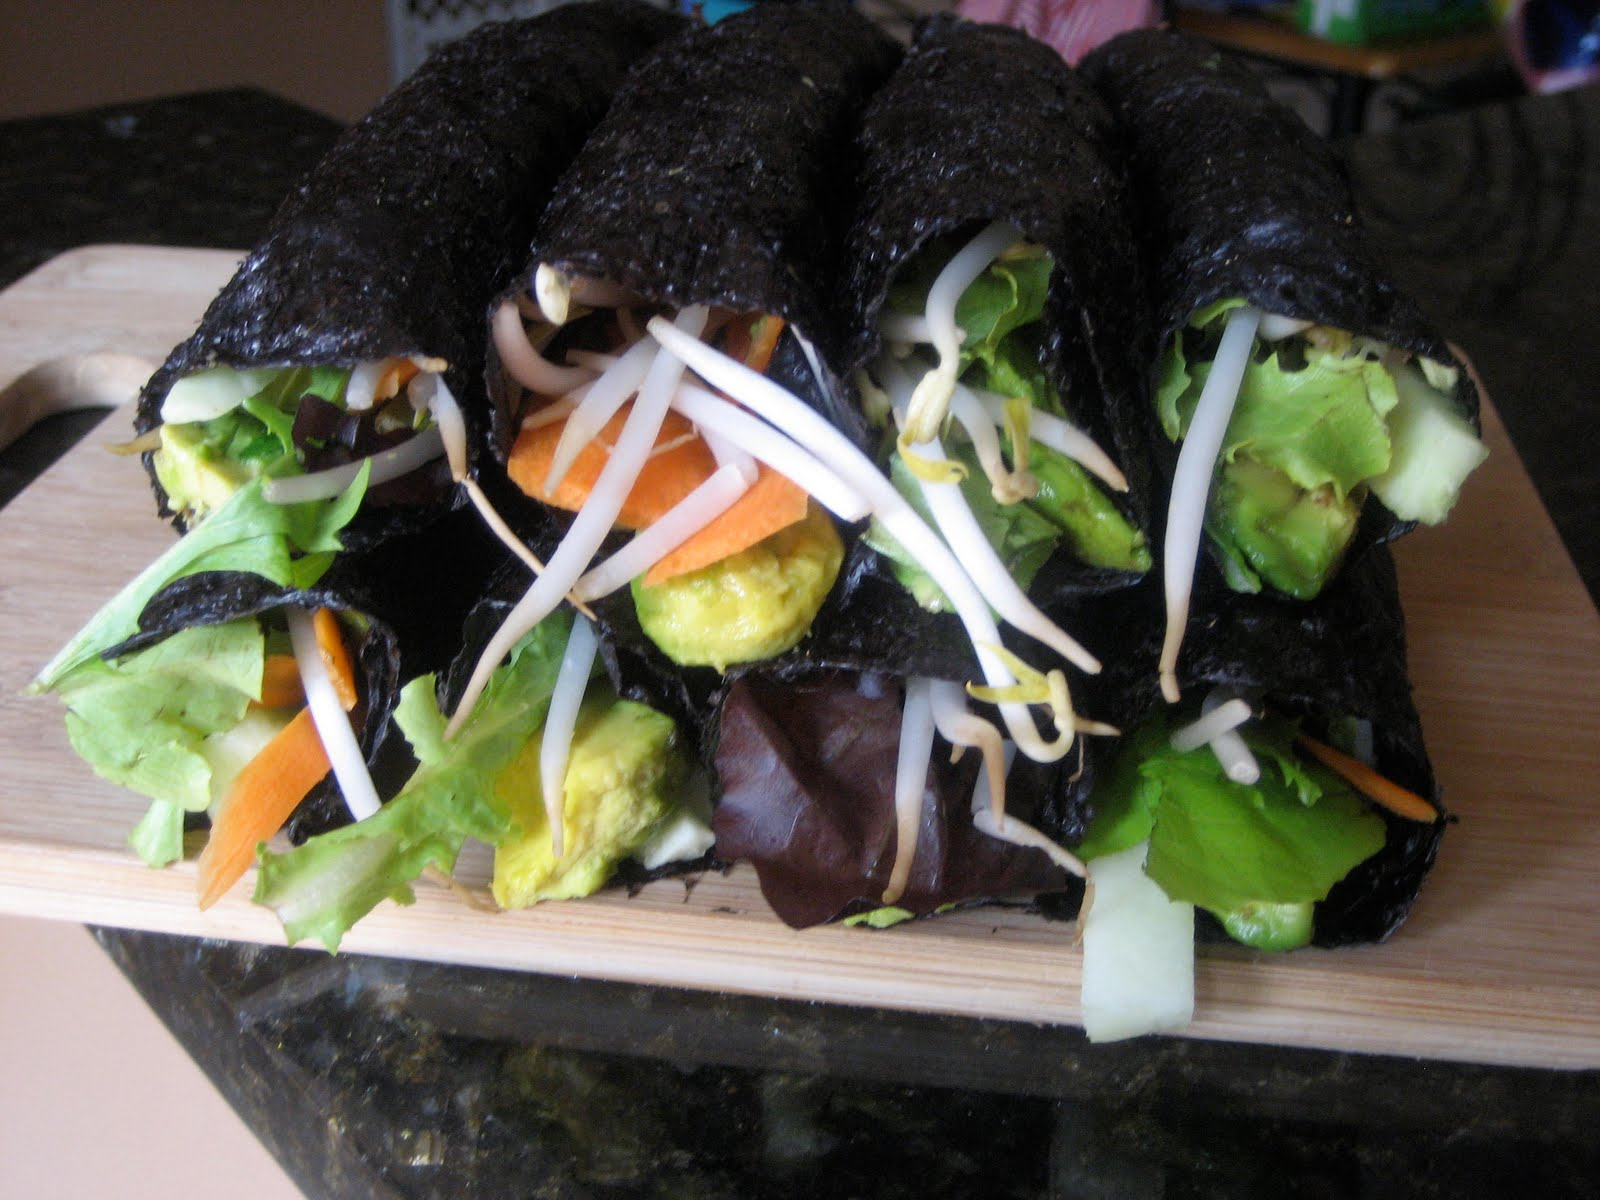 Our Raw Life: Vegetable Nori Rolls